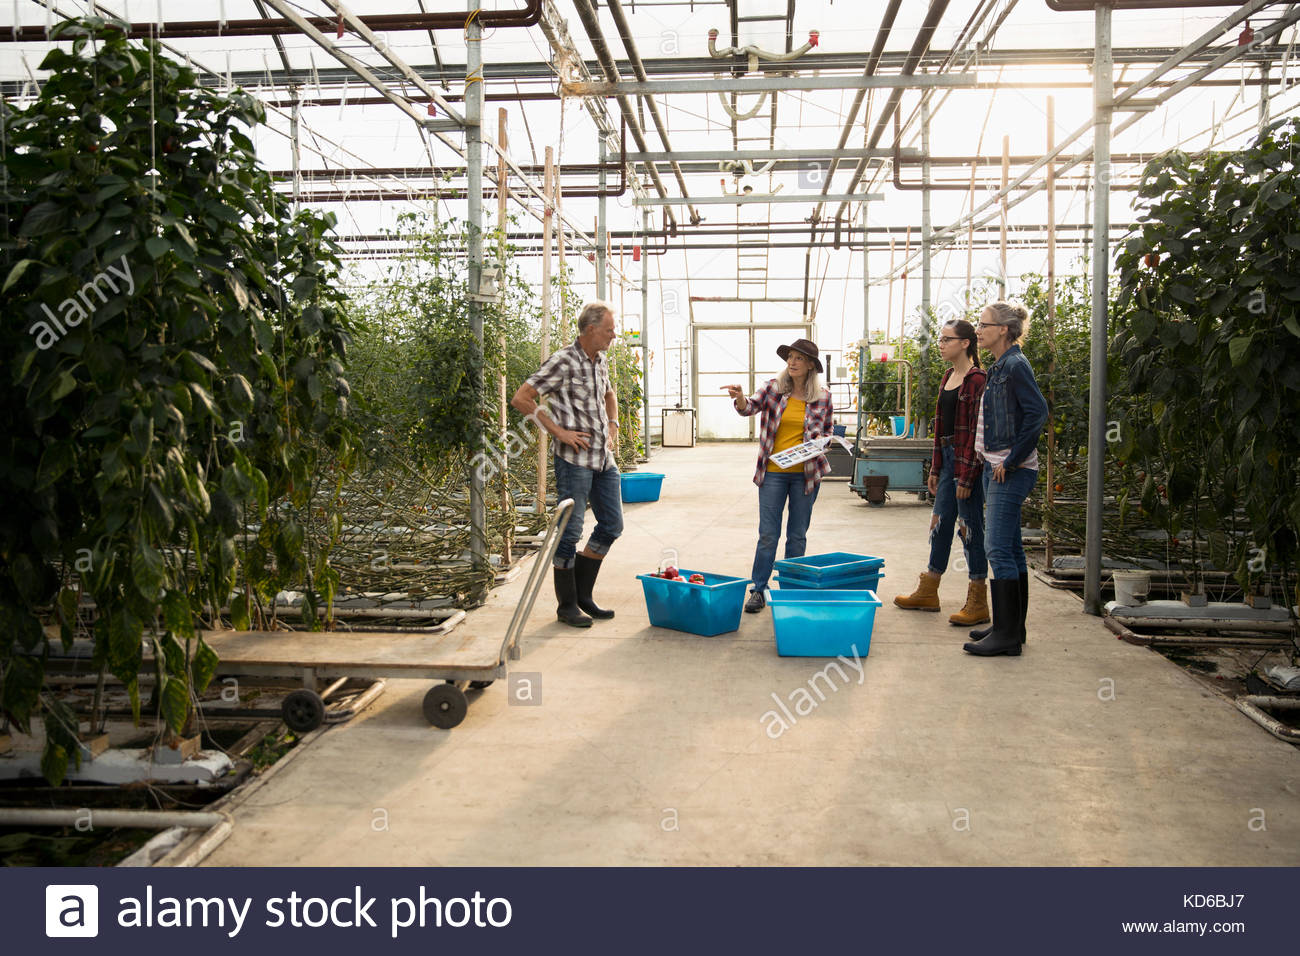 Farmers talking, harvesting vegetables in greenhouse - Stock Image